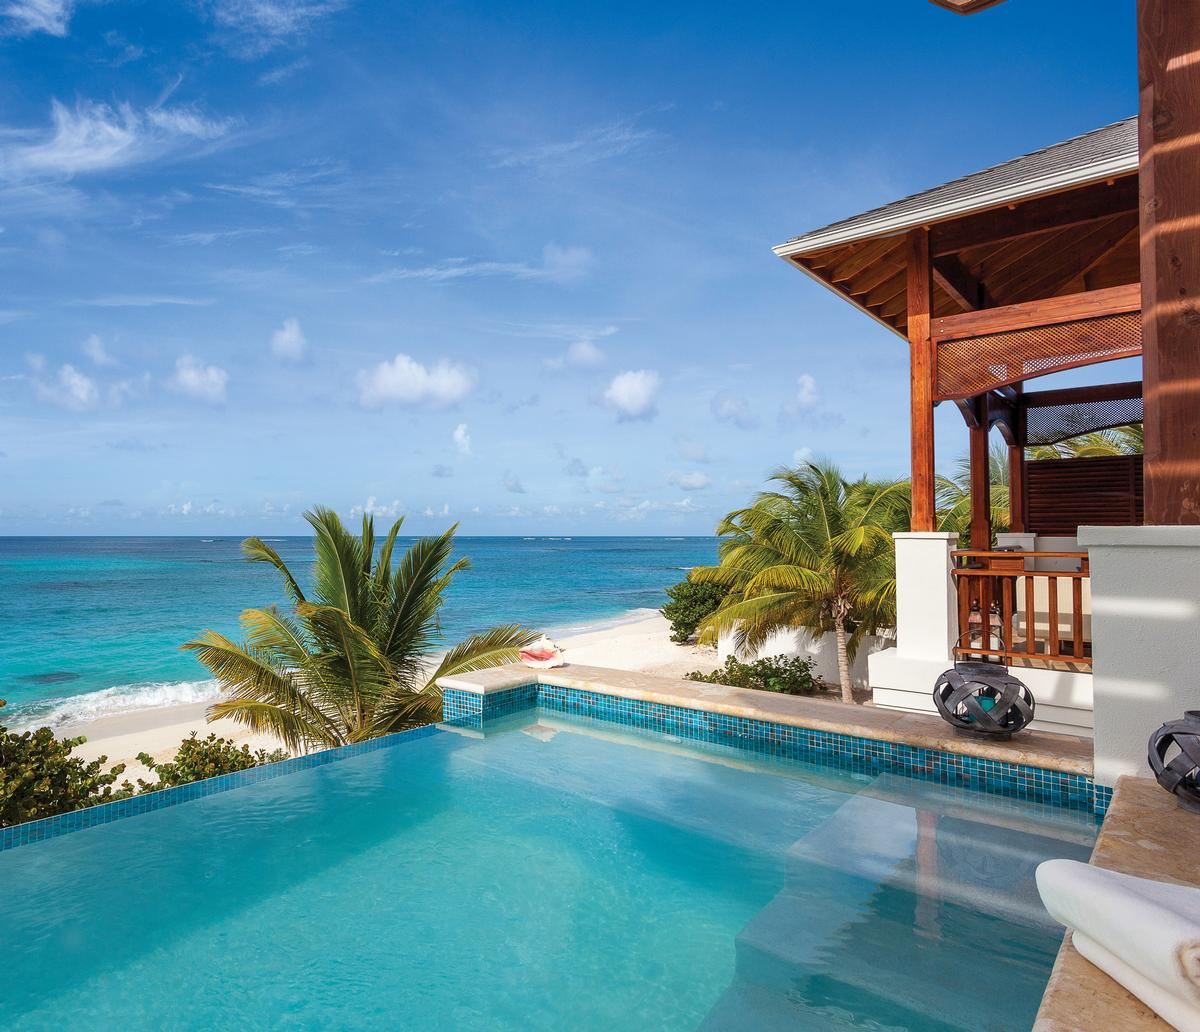 The Zemi Beach House is set to open in Anguilla in January 2016 / thierrydehove-zemi-beach